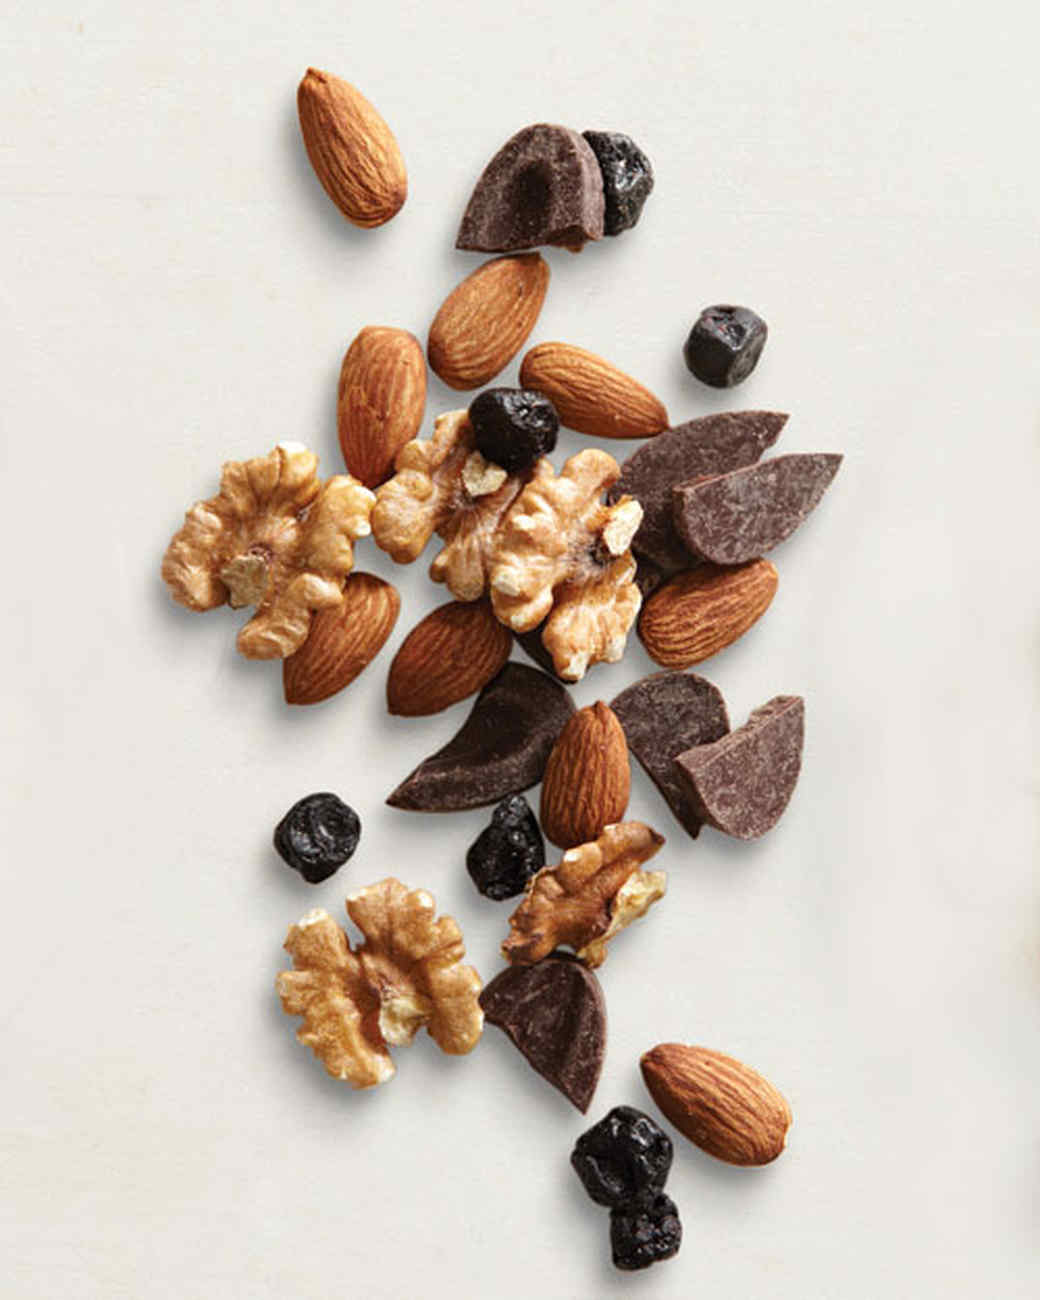 Chocolate-Nut Mix